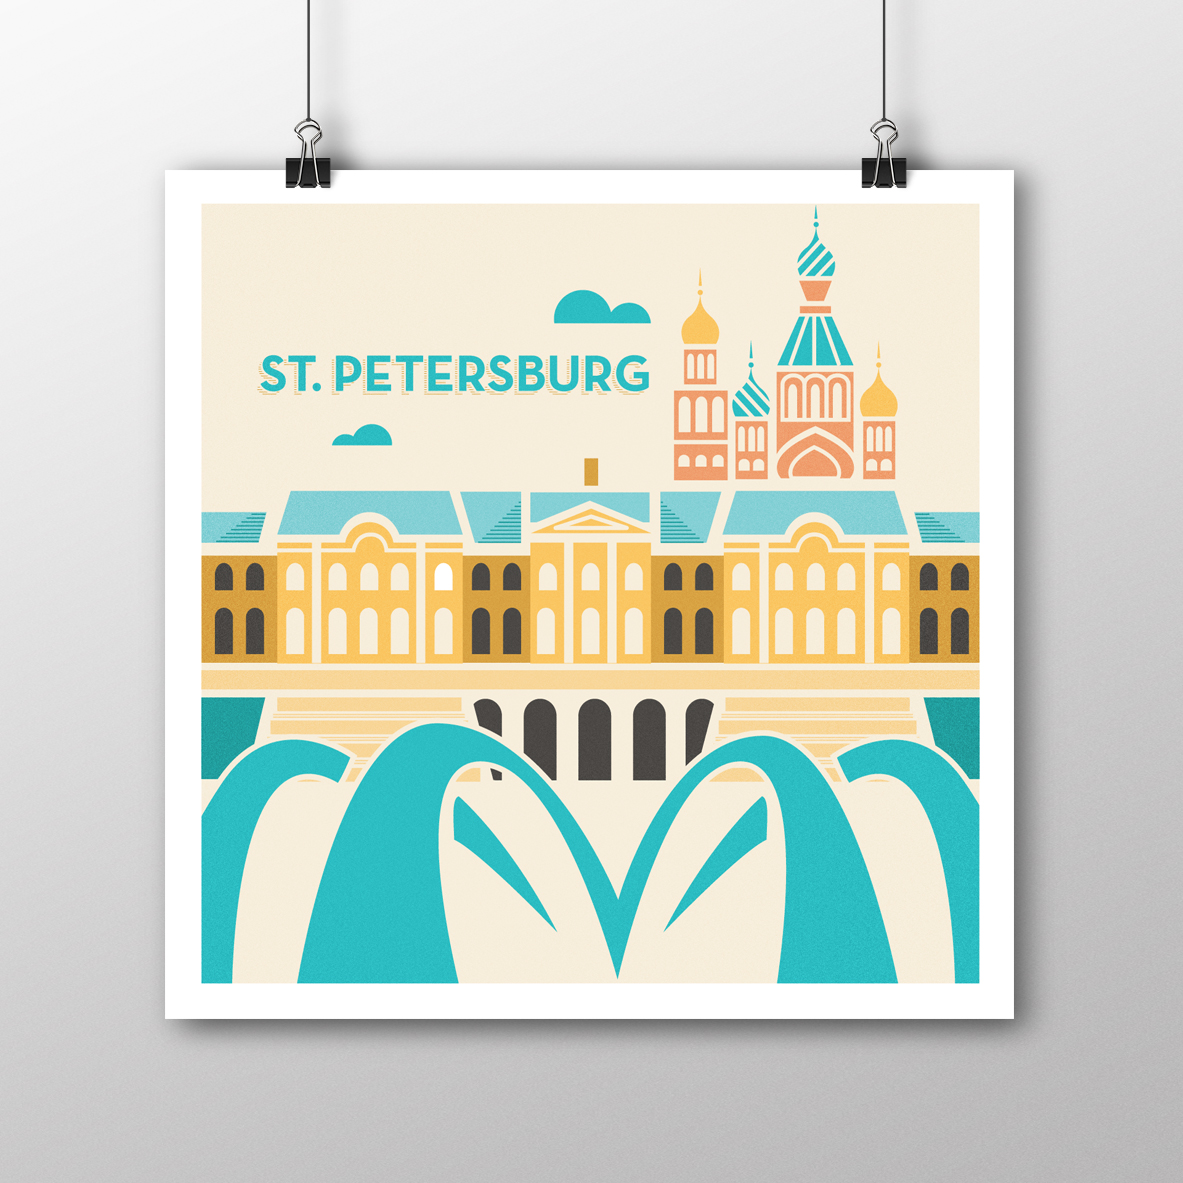 St. Petersburg Illustrated Poster